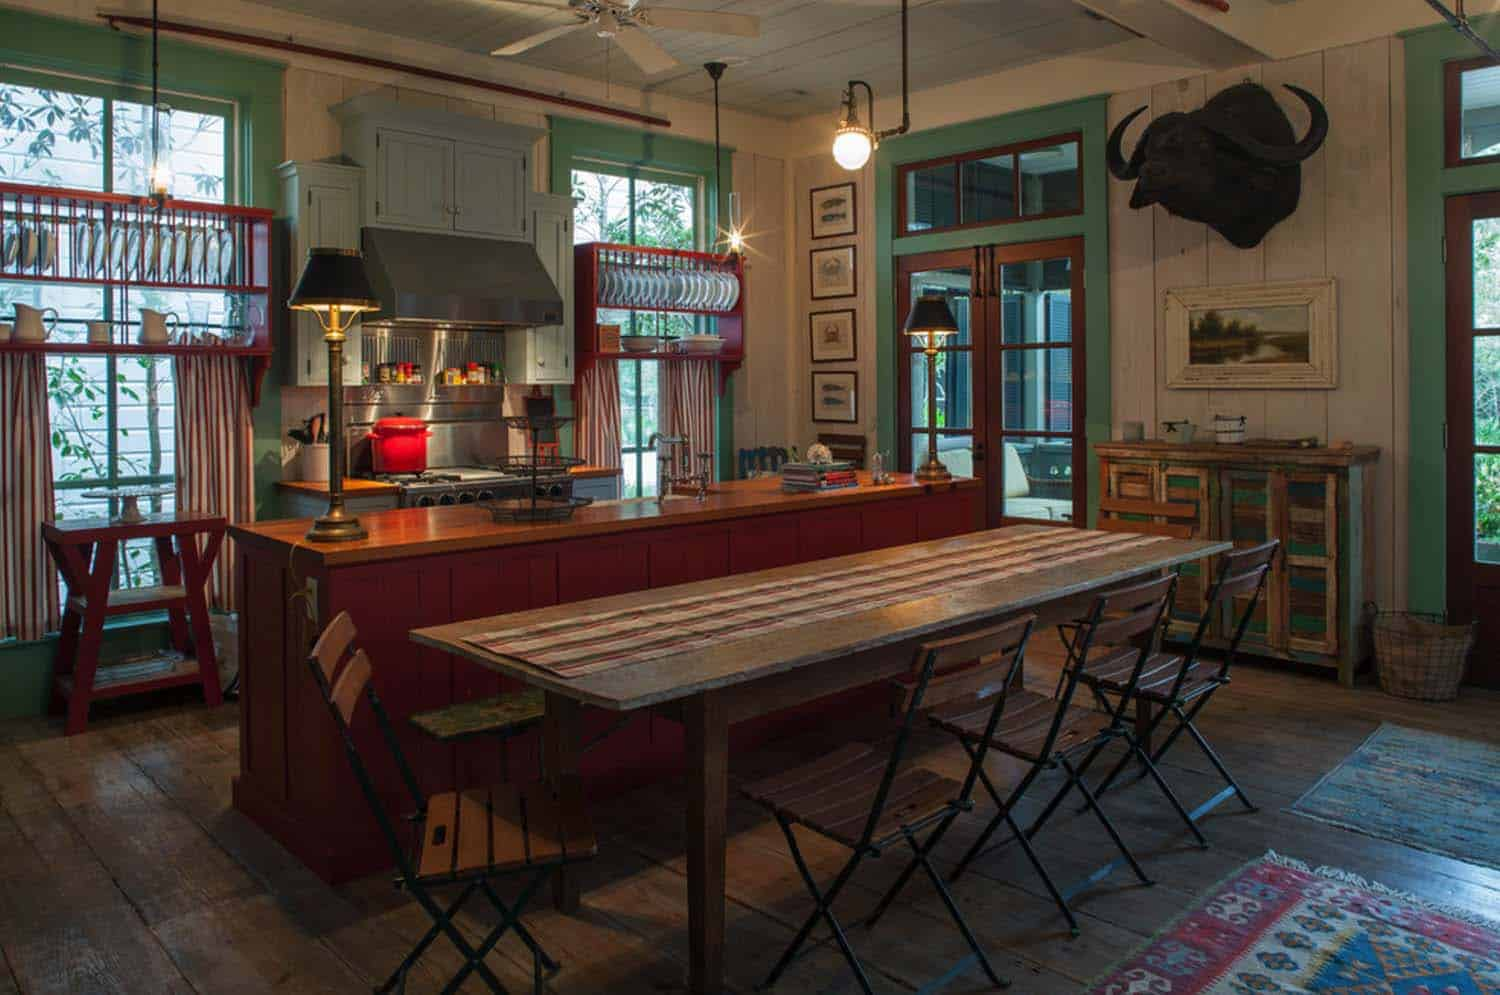 Fish Camp Beach Cottage-Historical Concepts-10-1 Kindesign